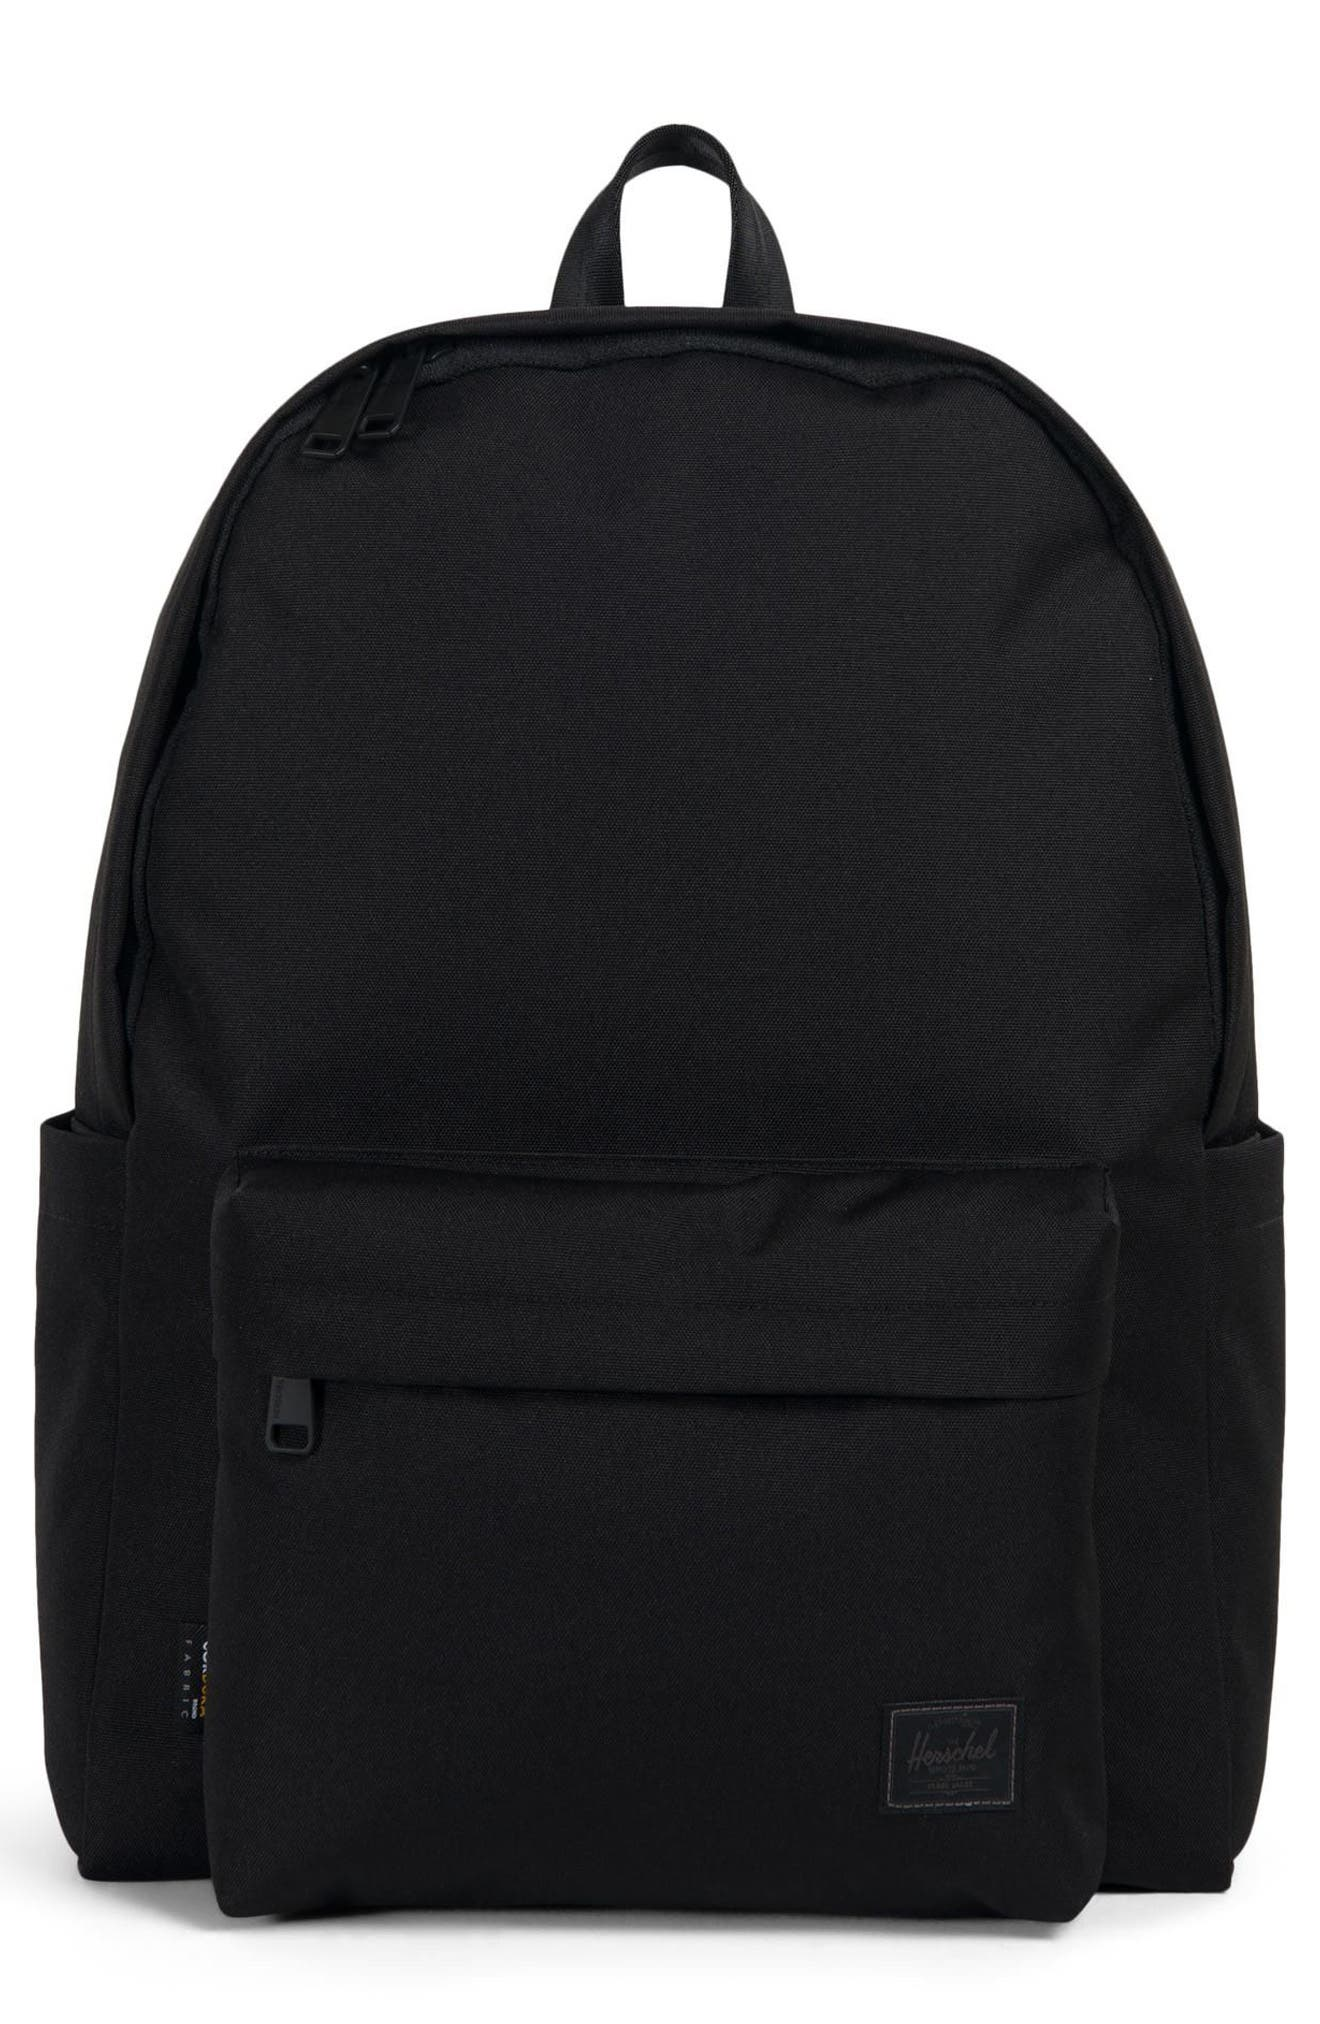 Berg Backpack - Black